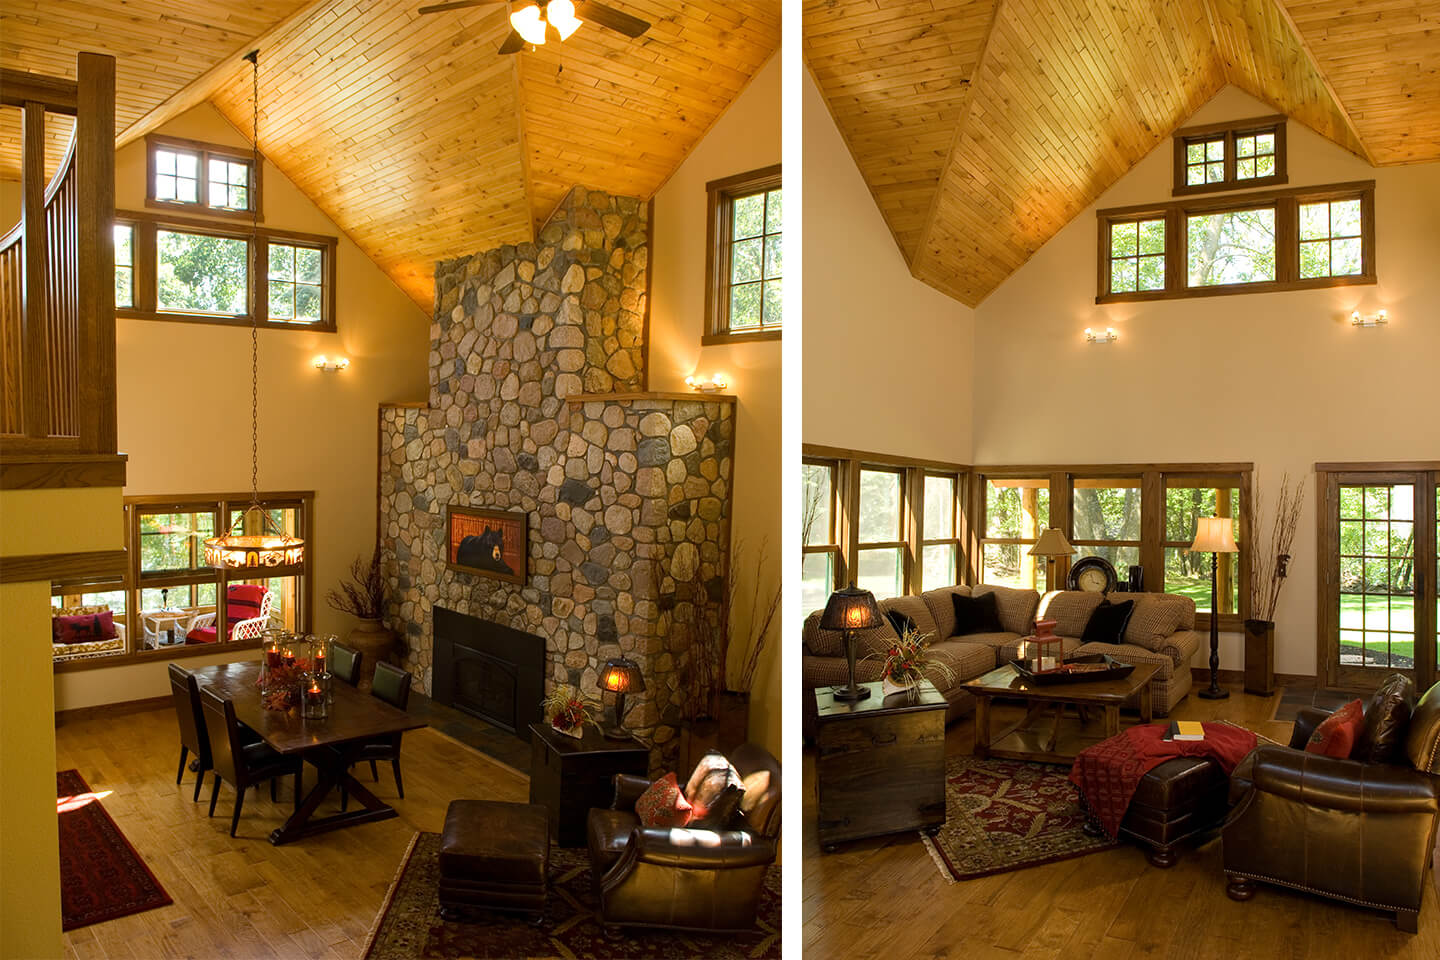 Dining room with river rock fireplace, and living room